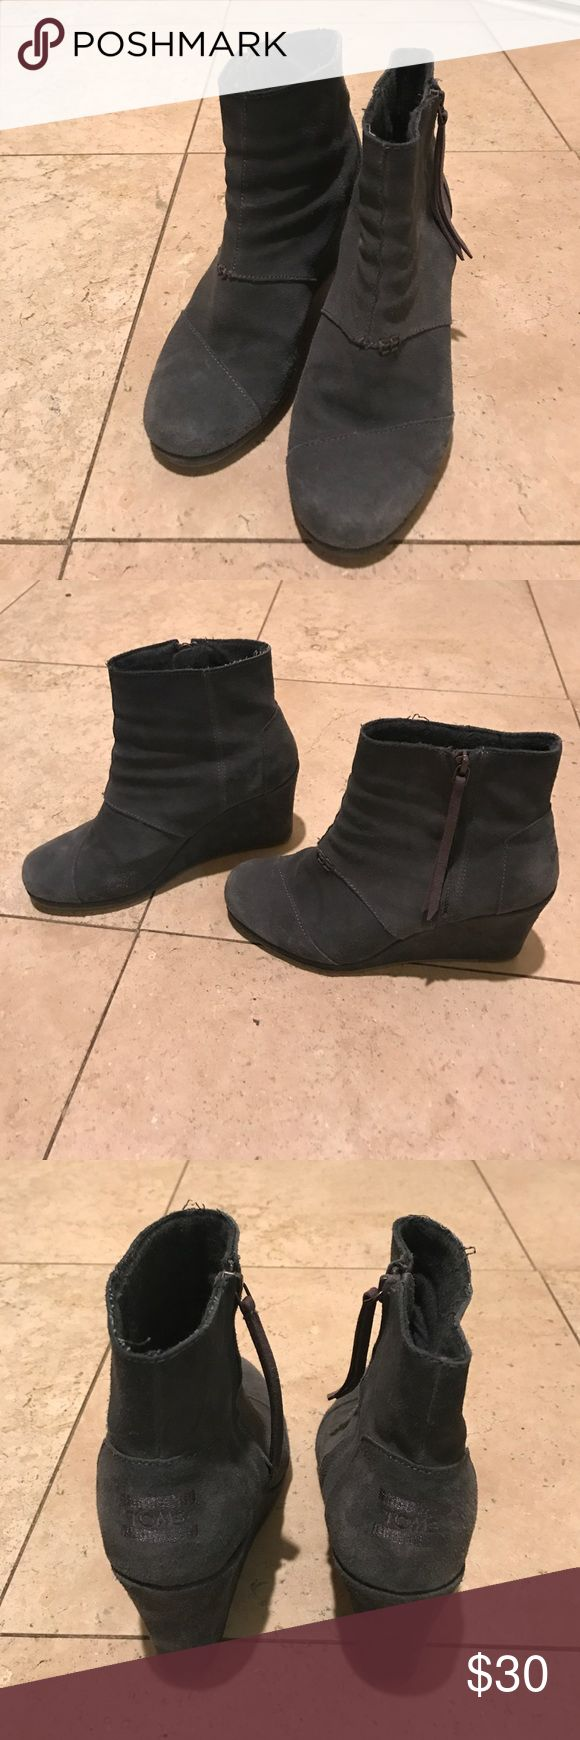 25 best ideas about toms wedge booties on